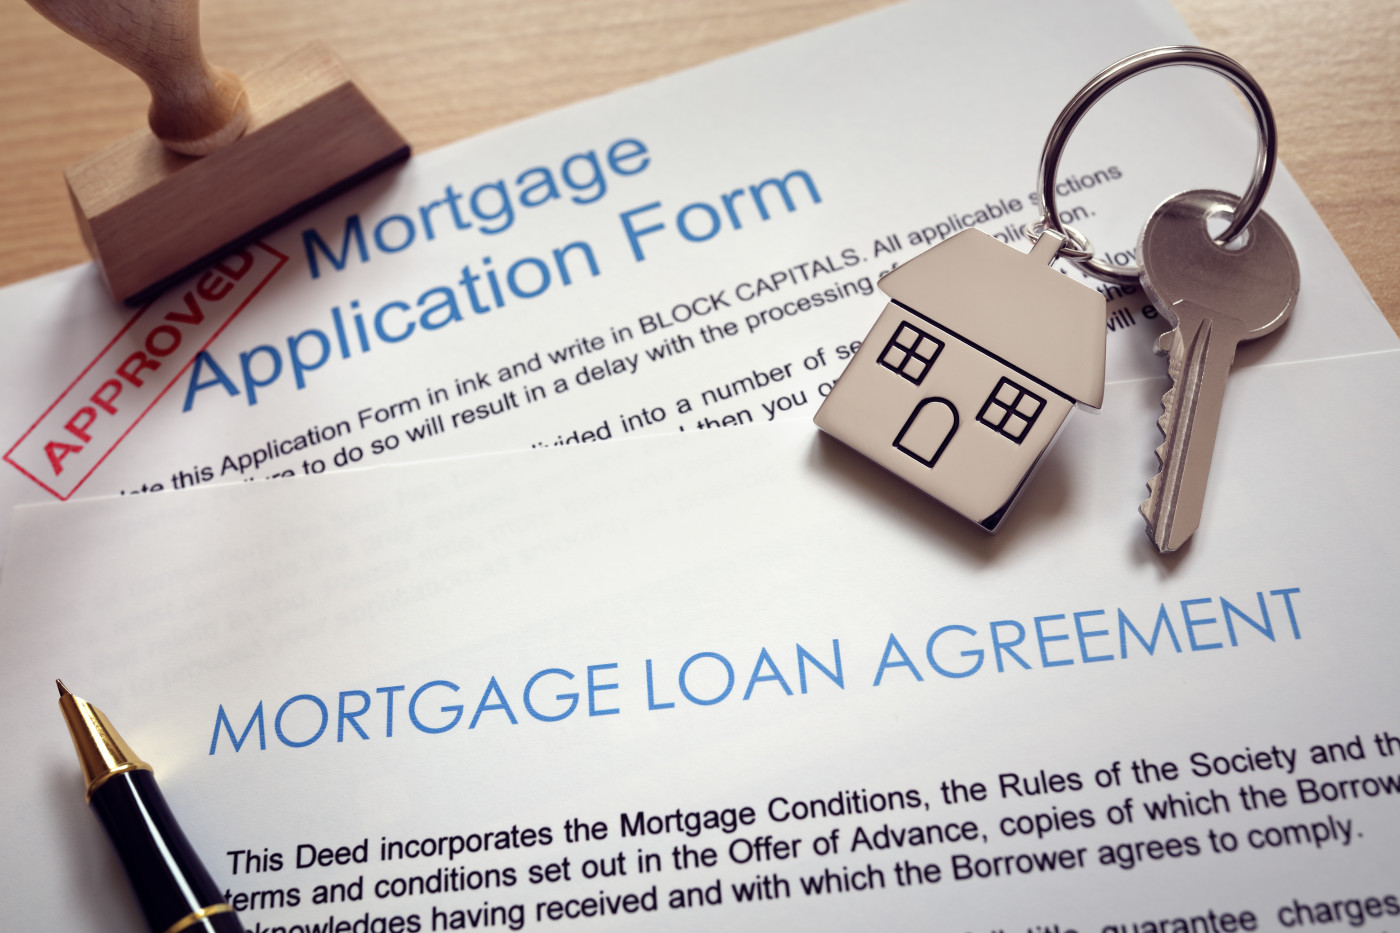 mortgage loan agreement with an approval stamp